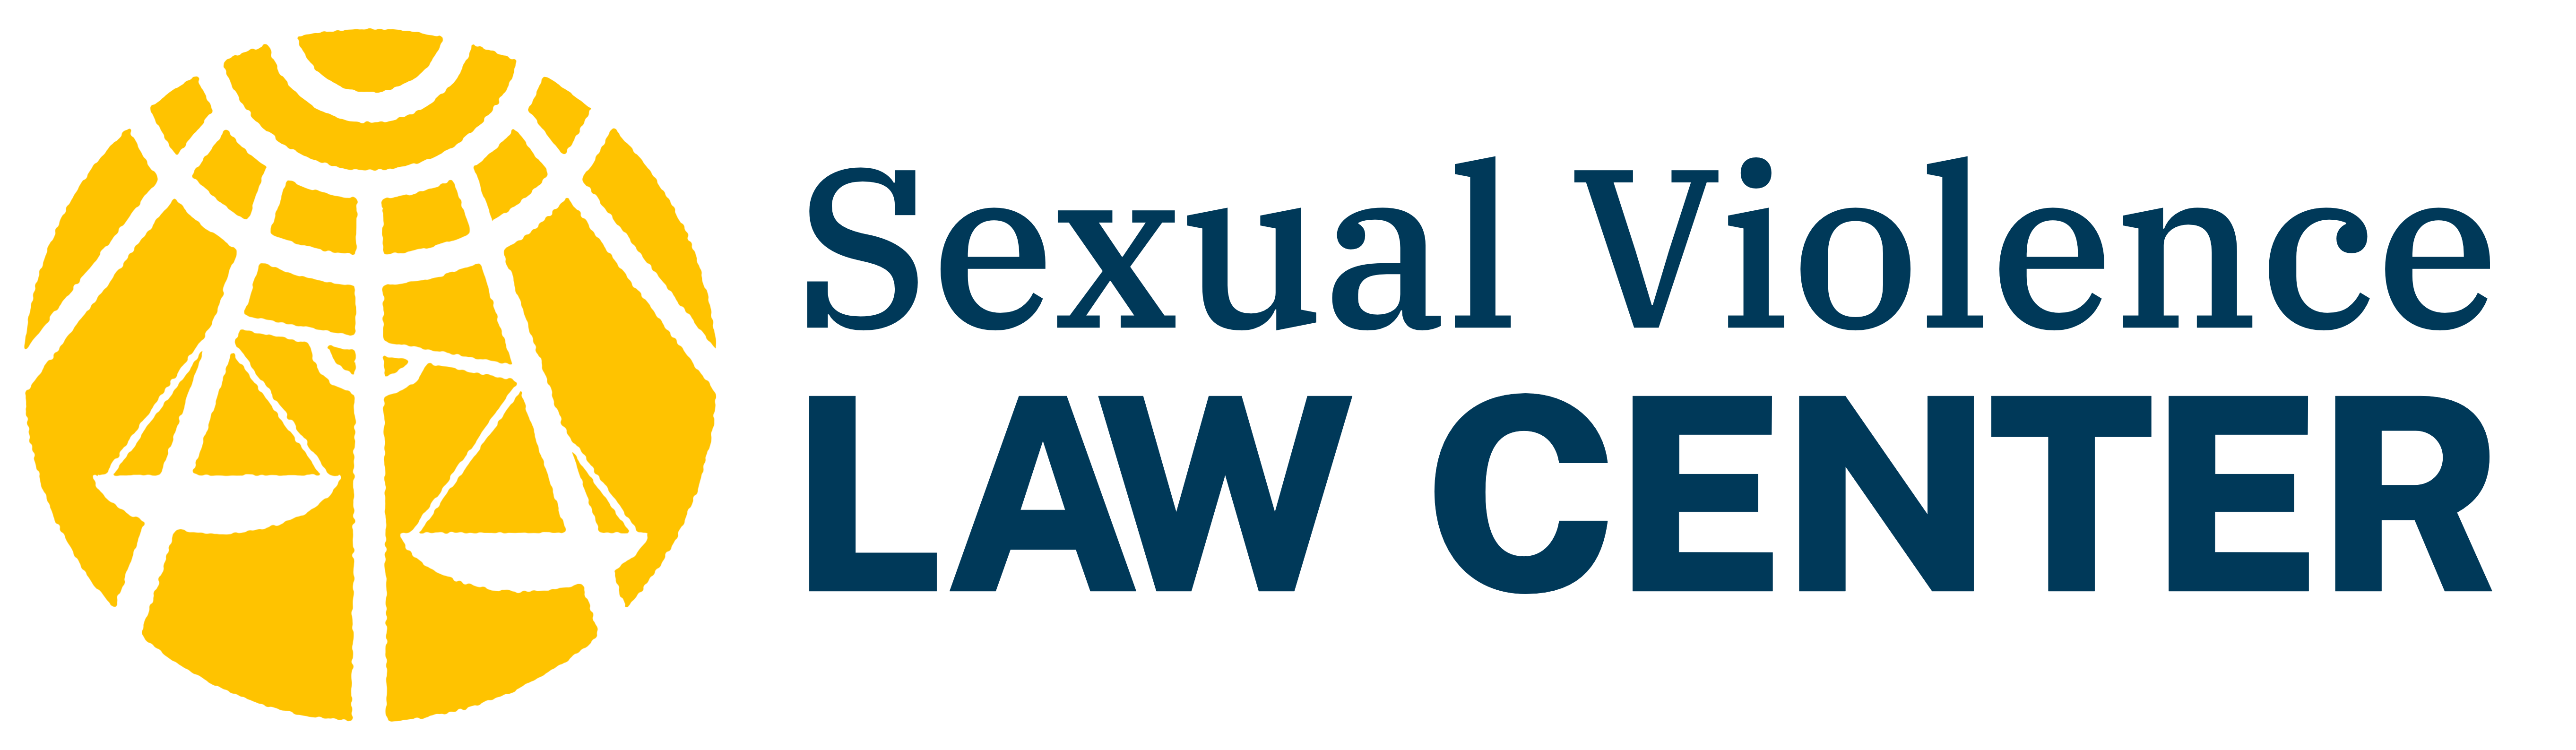 Sexual Violence Law Center